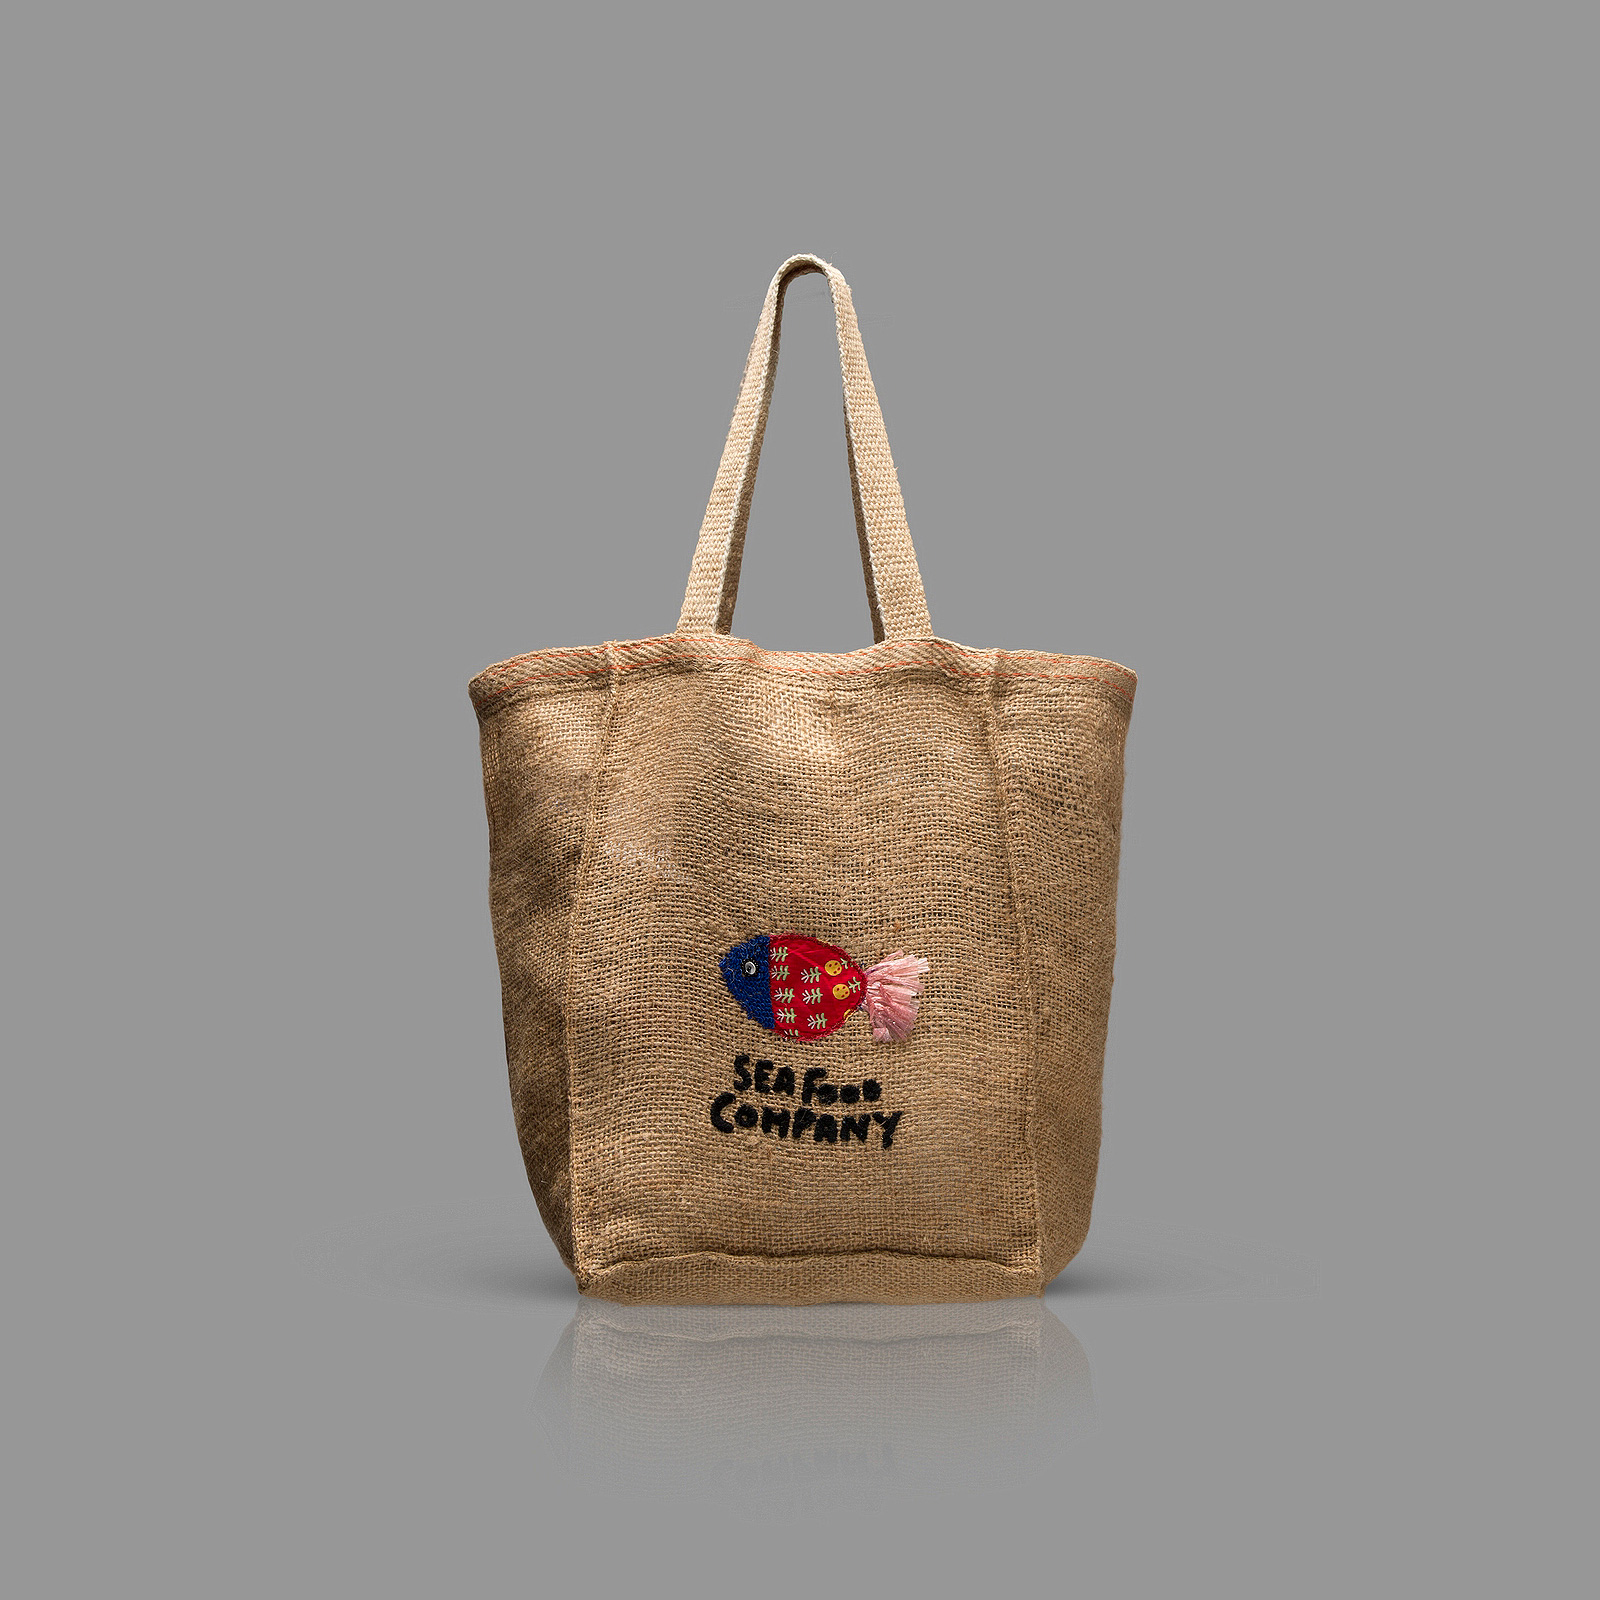 Sea food company Tote narrow